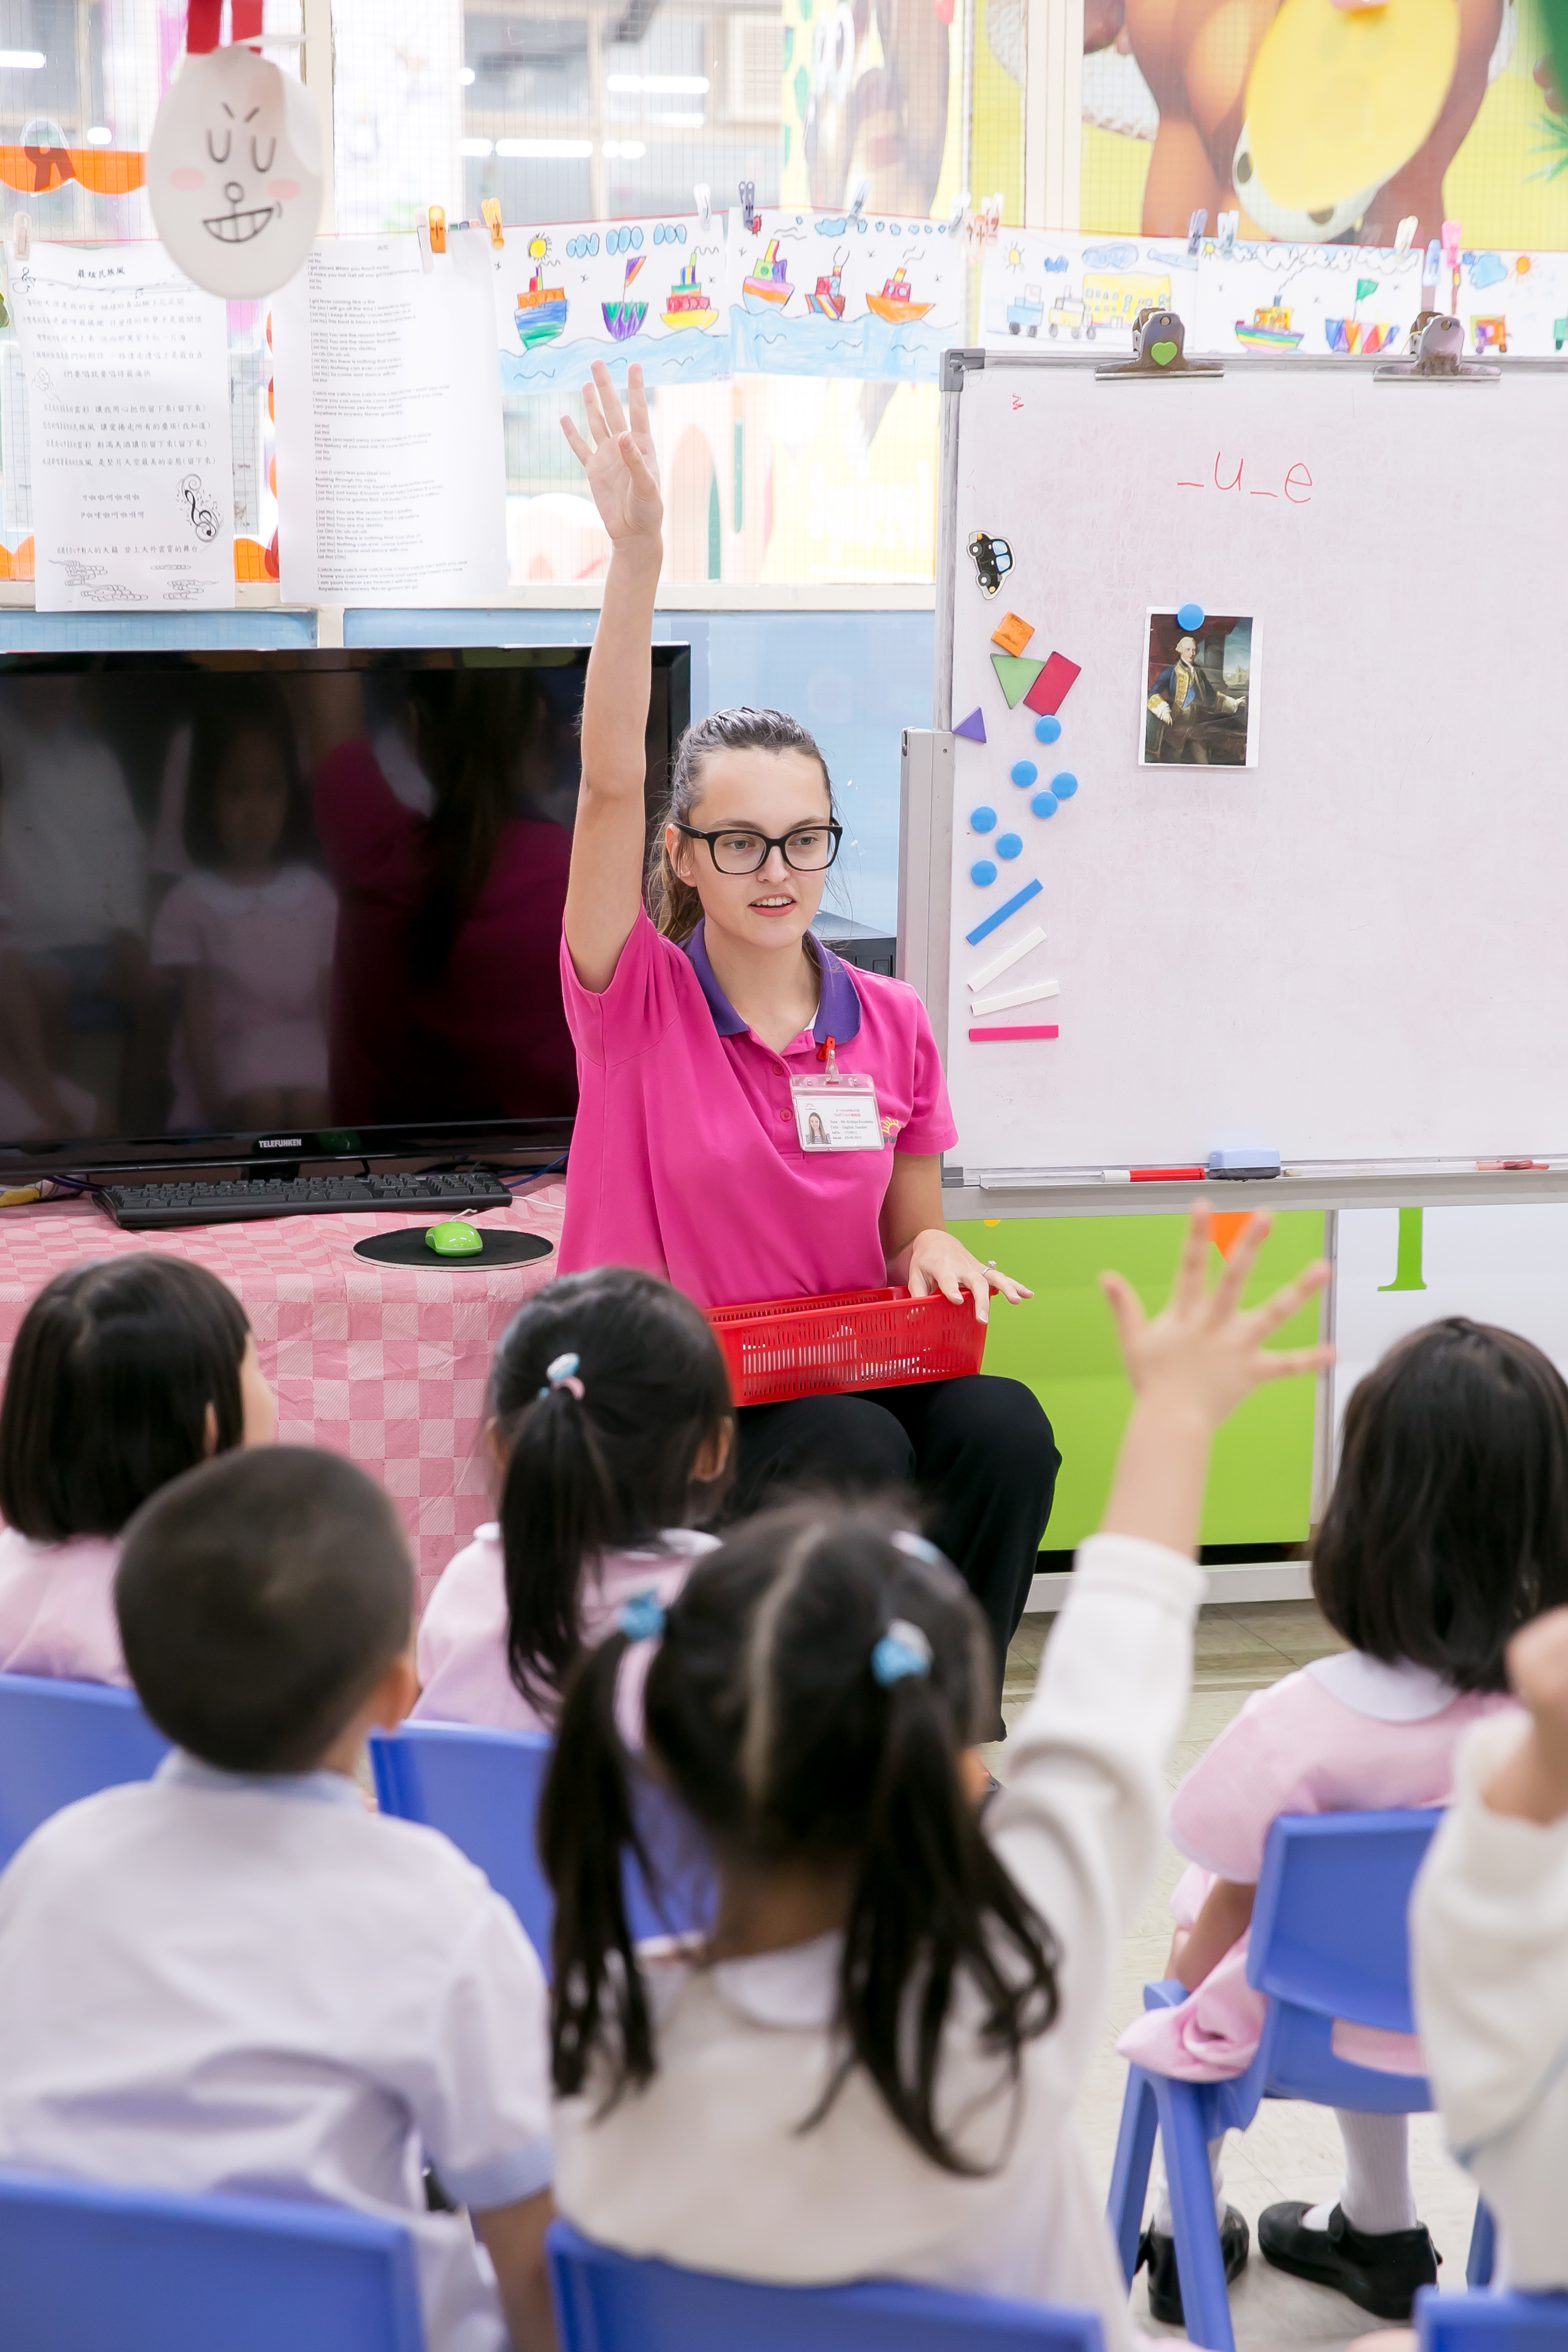 a TEFL teacher in pink t-shirt is encouraging children to participate in the lesson